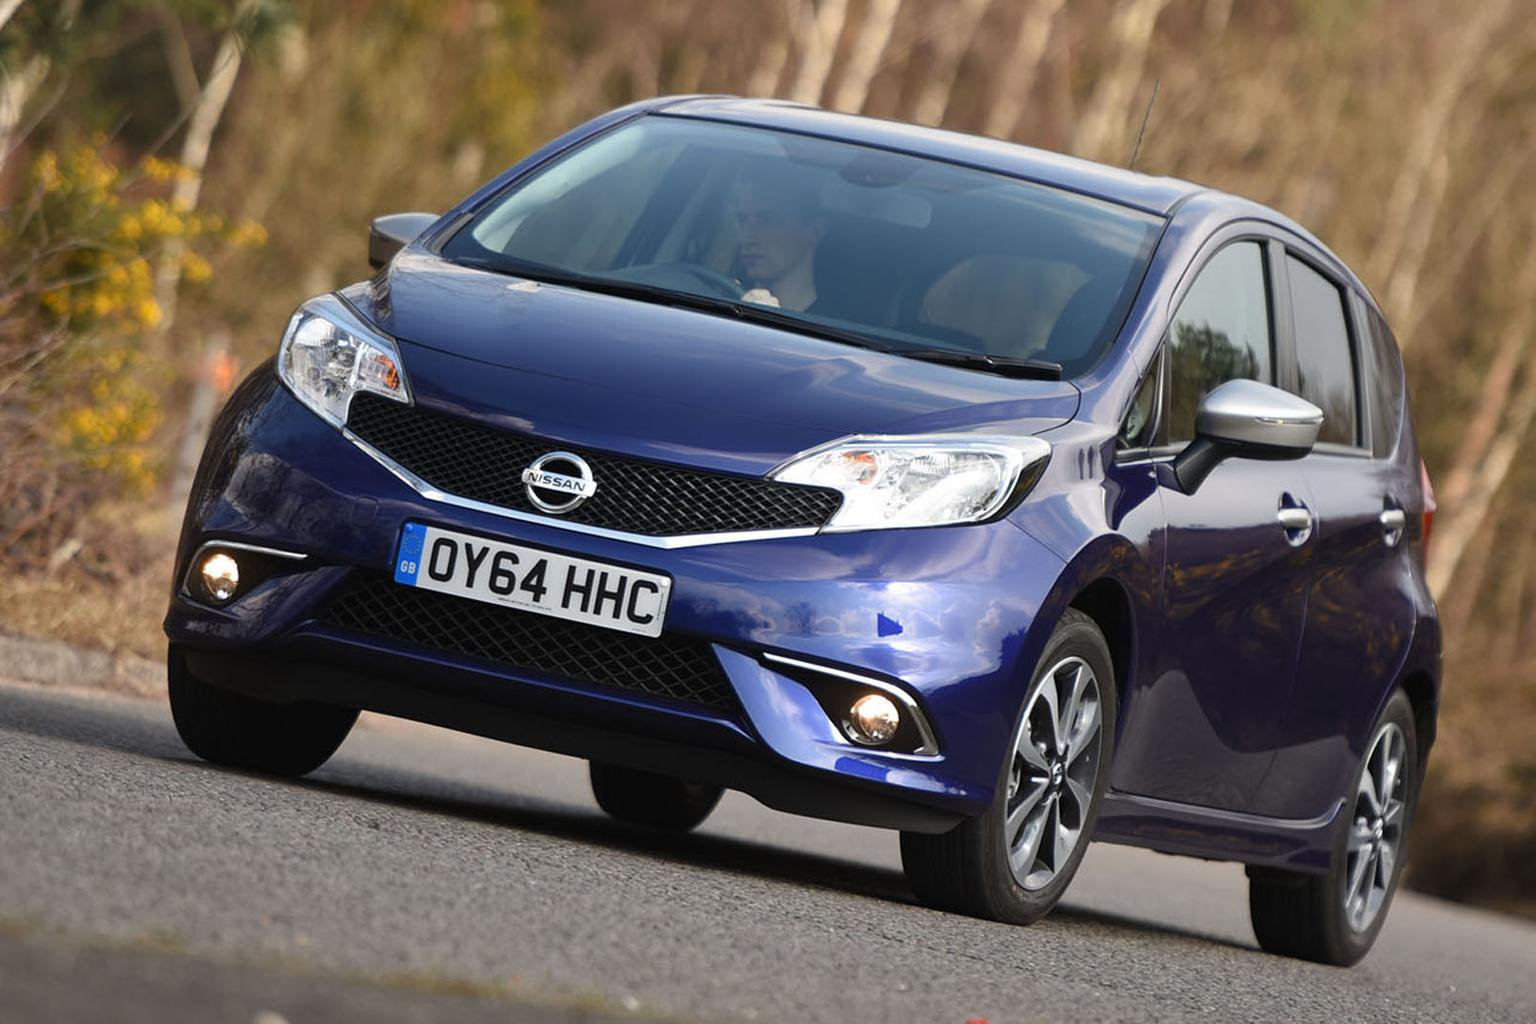 2015 Nissan Note 1.2 N-Tec review